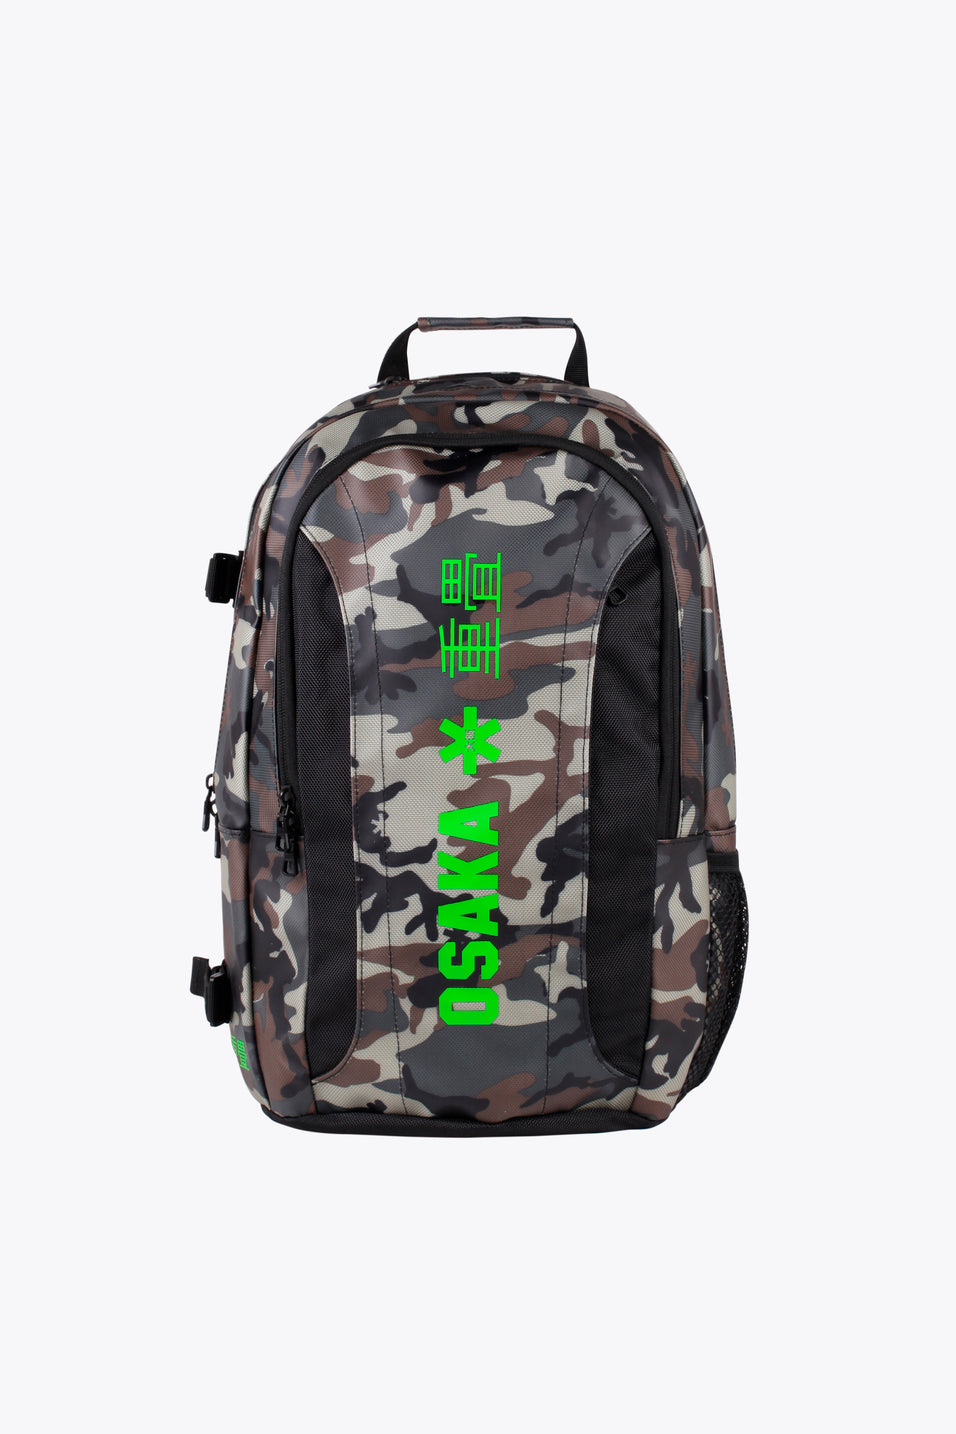 SP Large Backpack - Camo